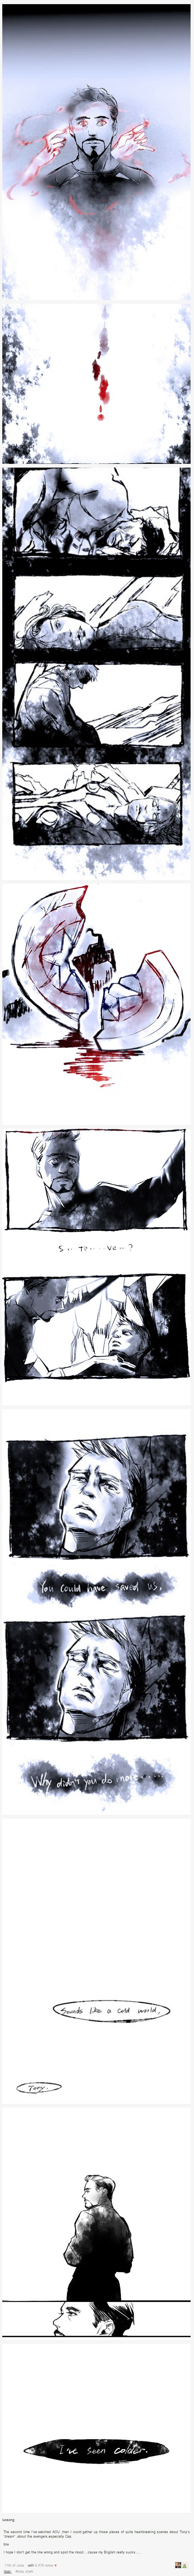 The vision Scarlet Witch made Tony dream | Avengers Age of Ultron | By luosong